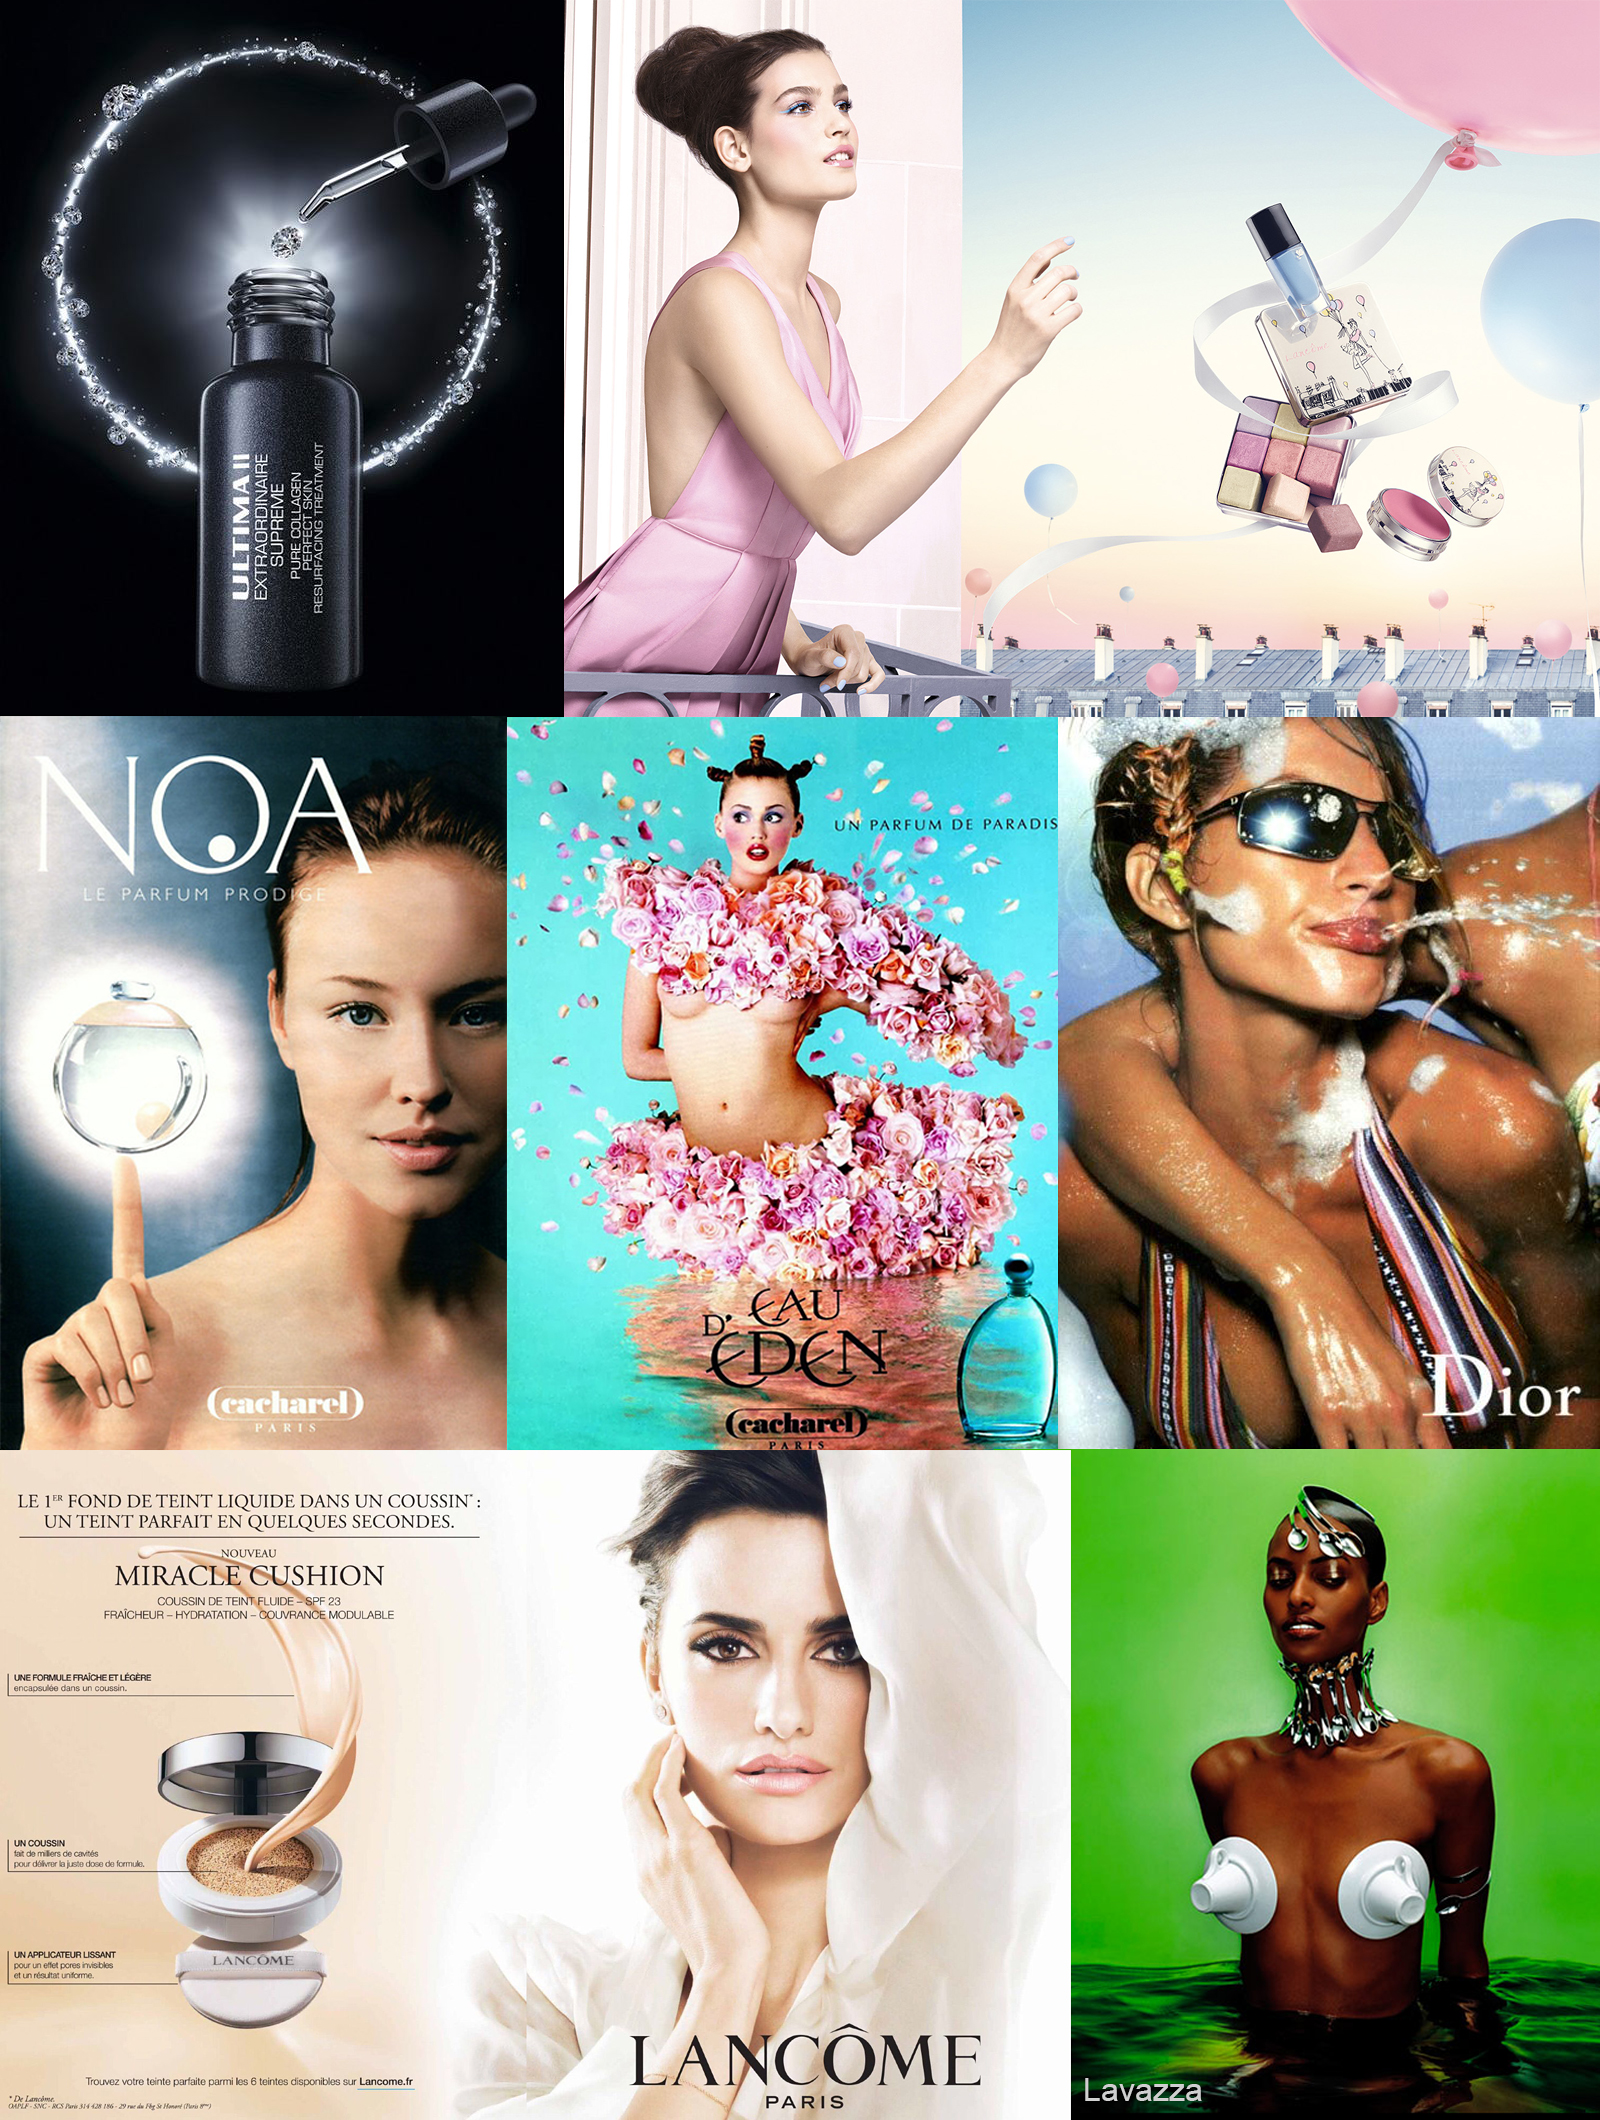 Collage of Images: Some with makeup product stylized, others with models with photoshopped clothing and/or backgrounds